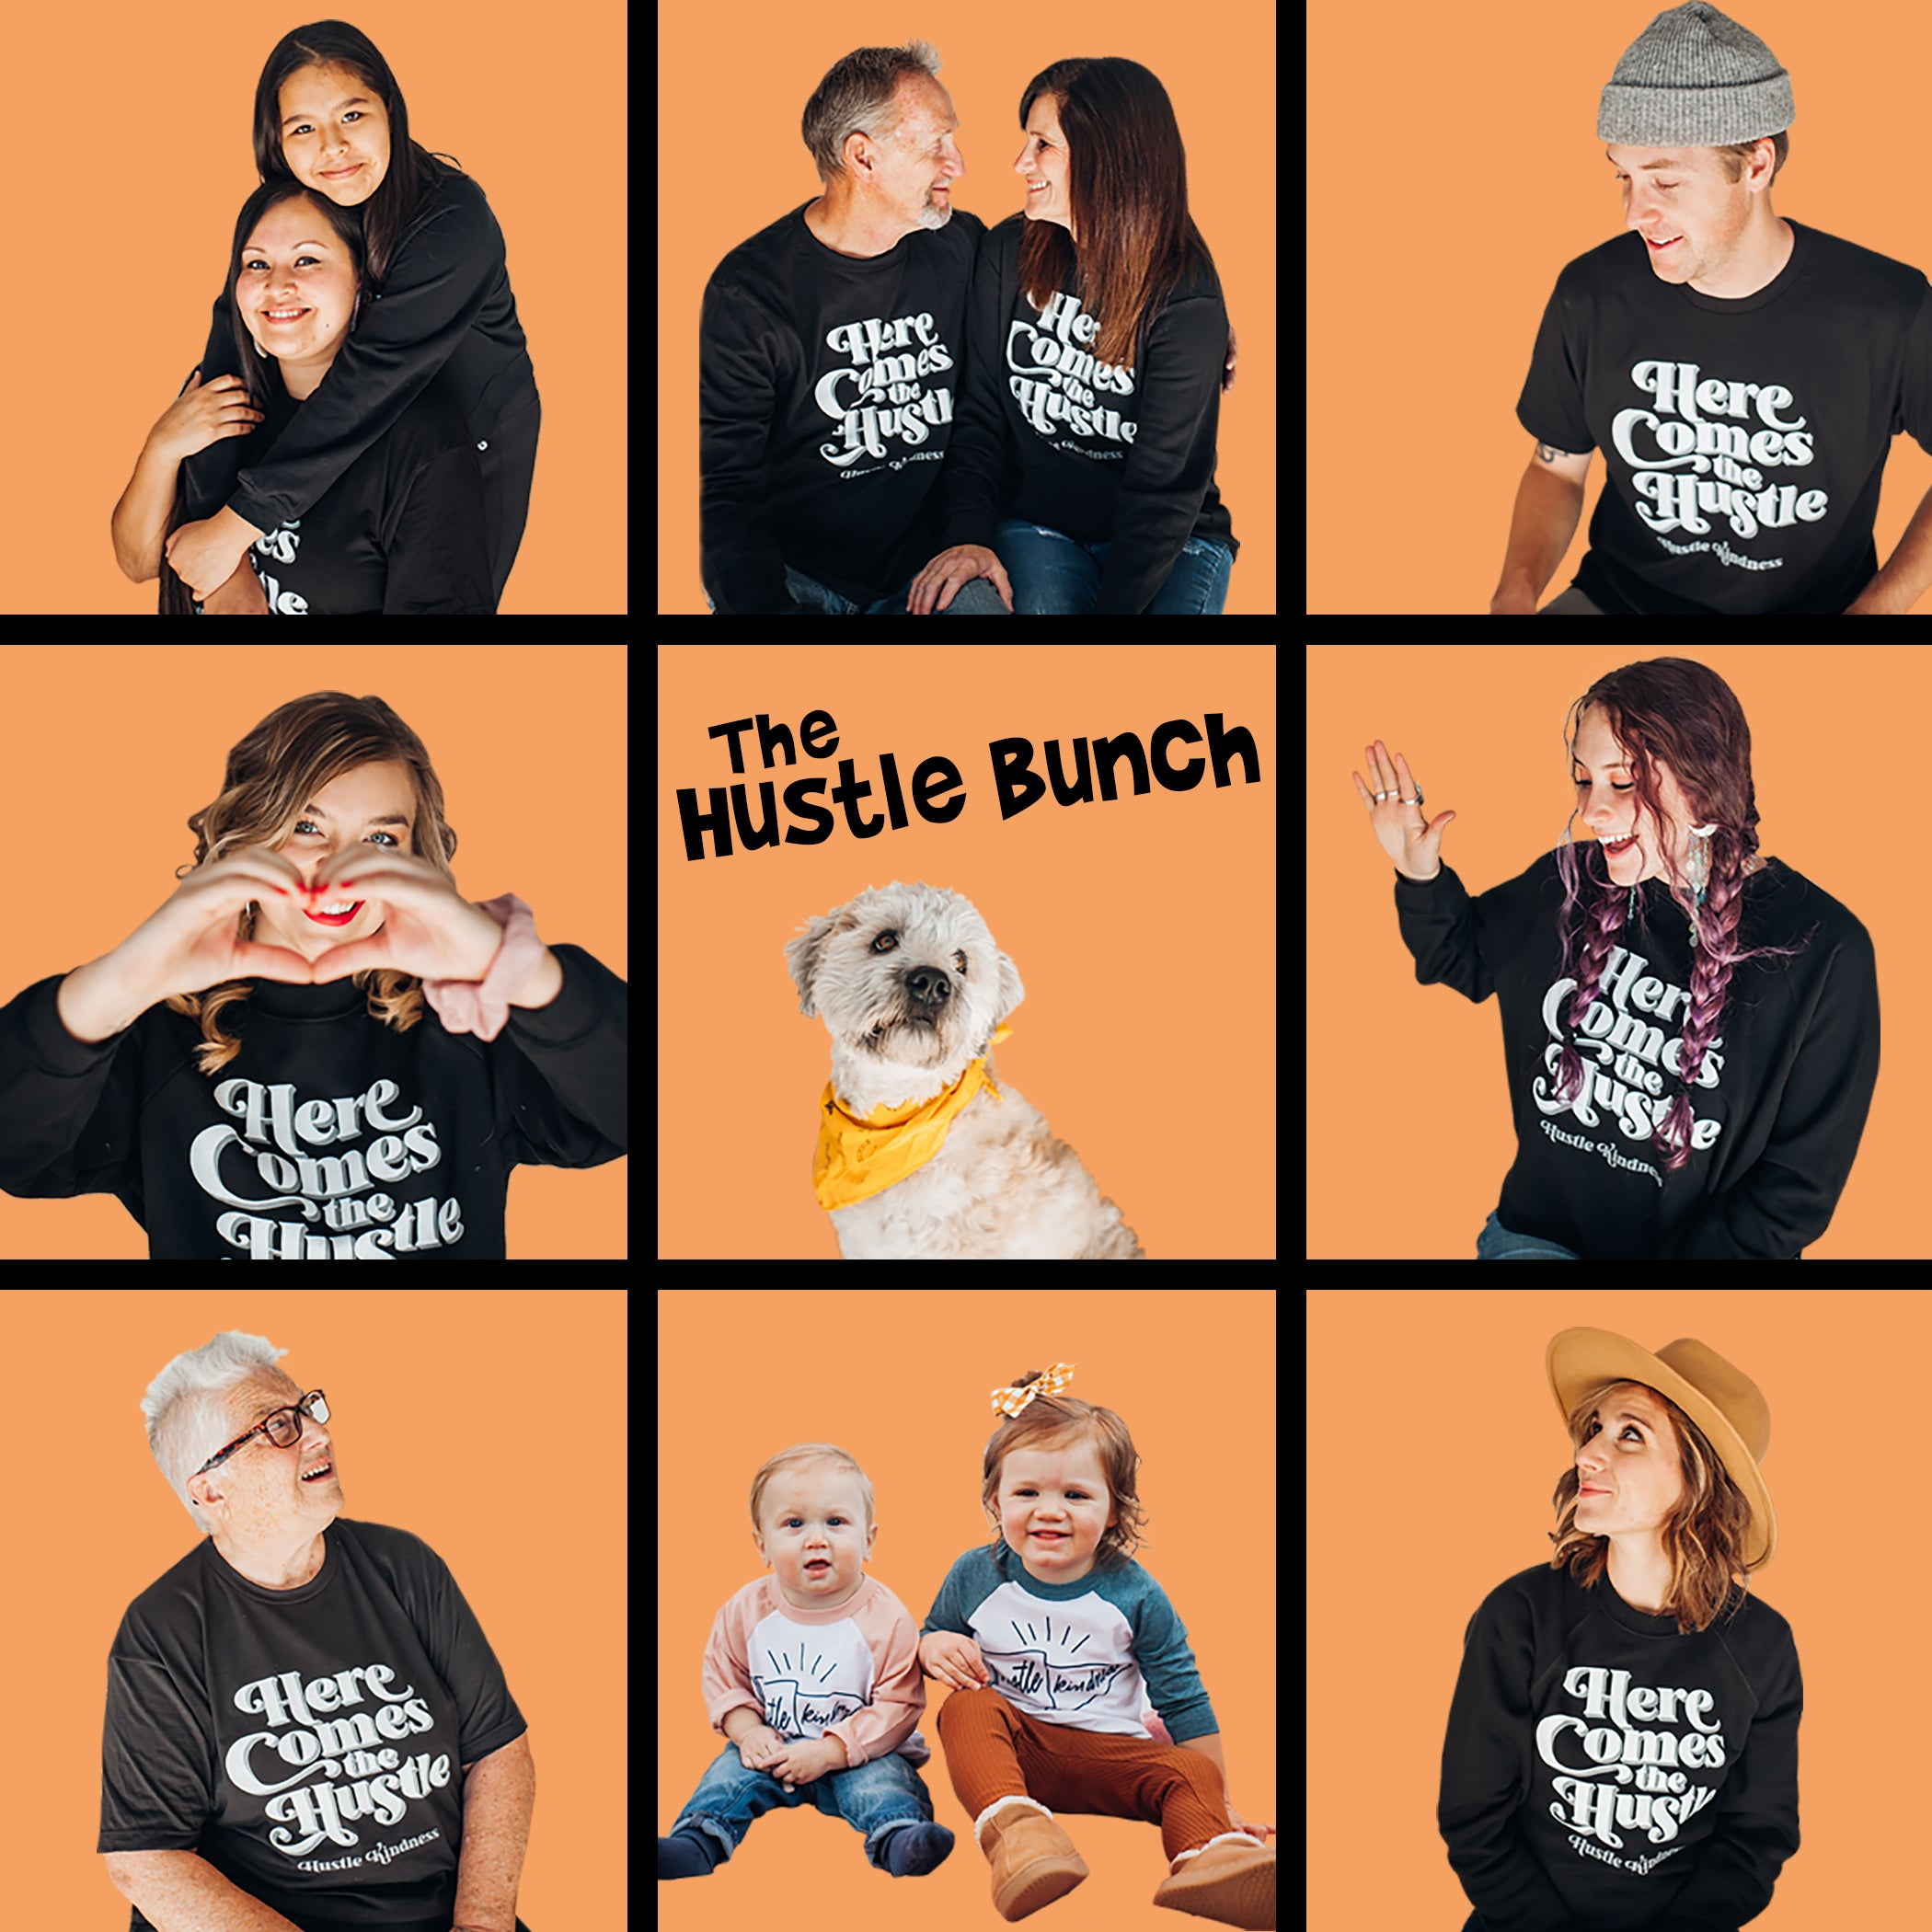 The Hustle Bunch - Hustle Kindness